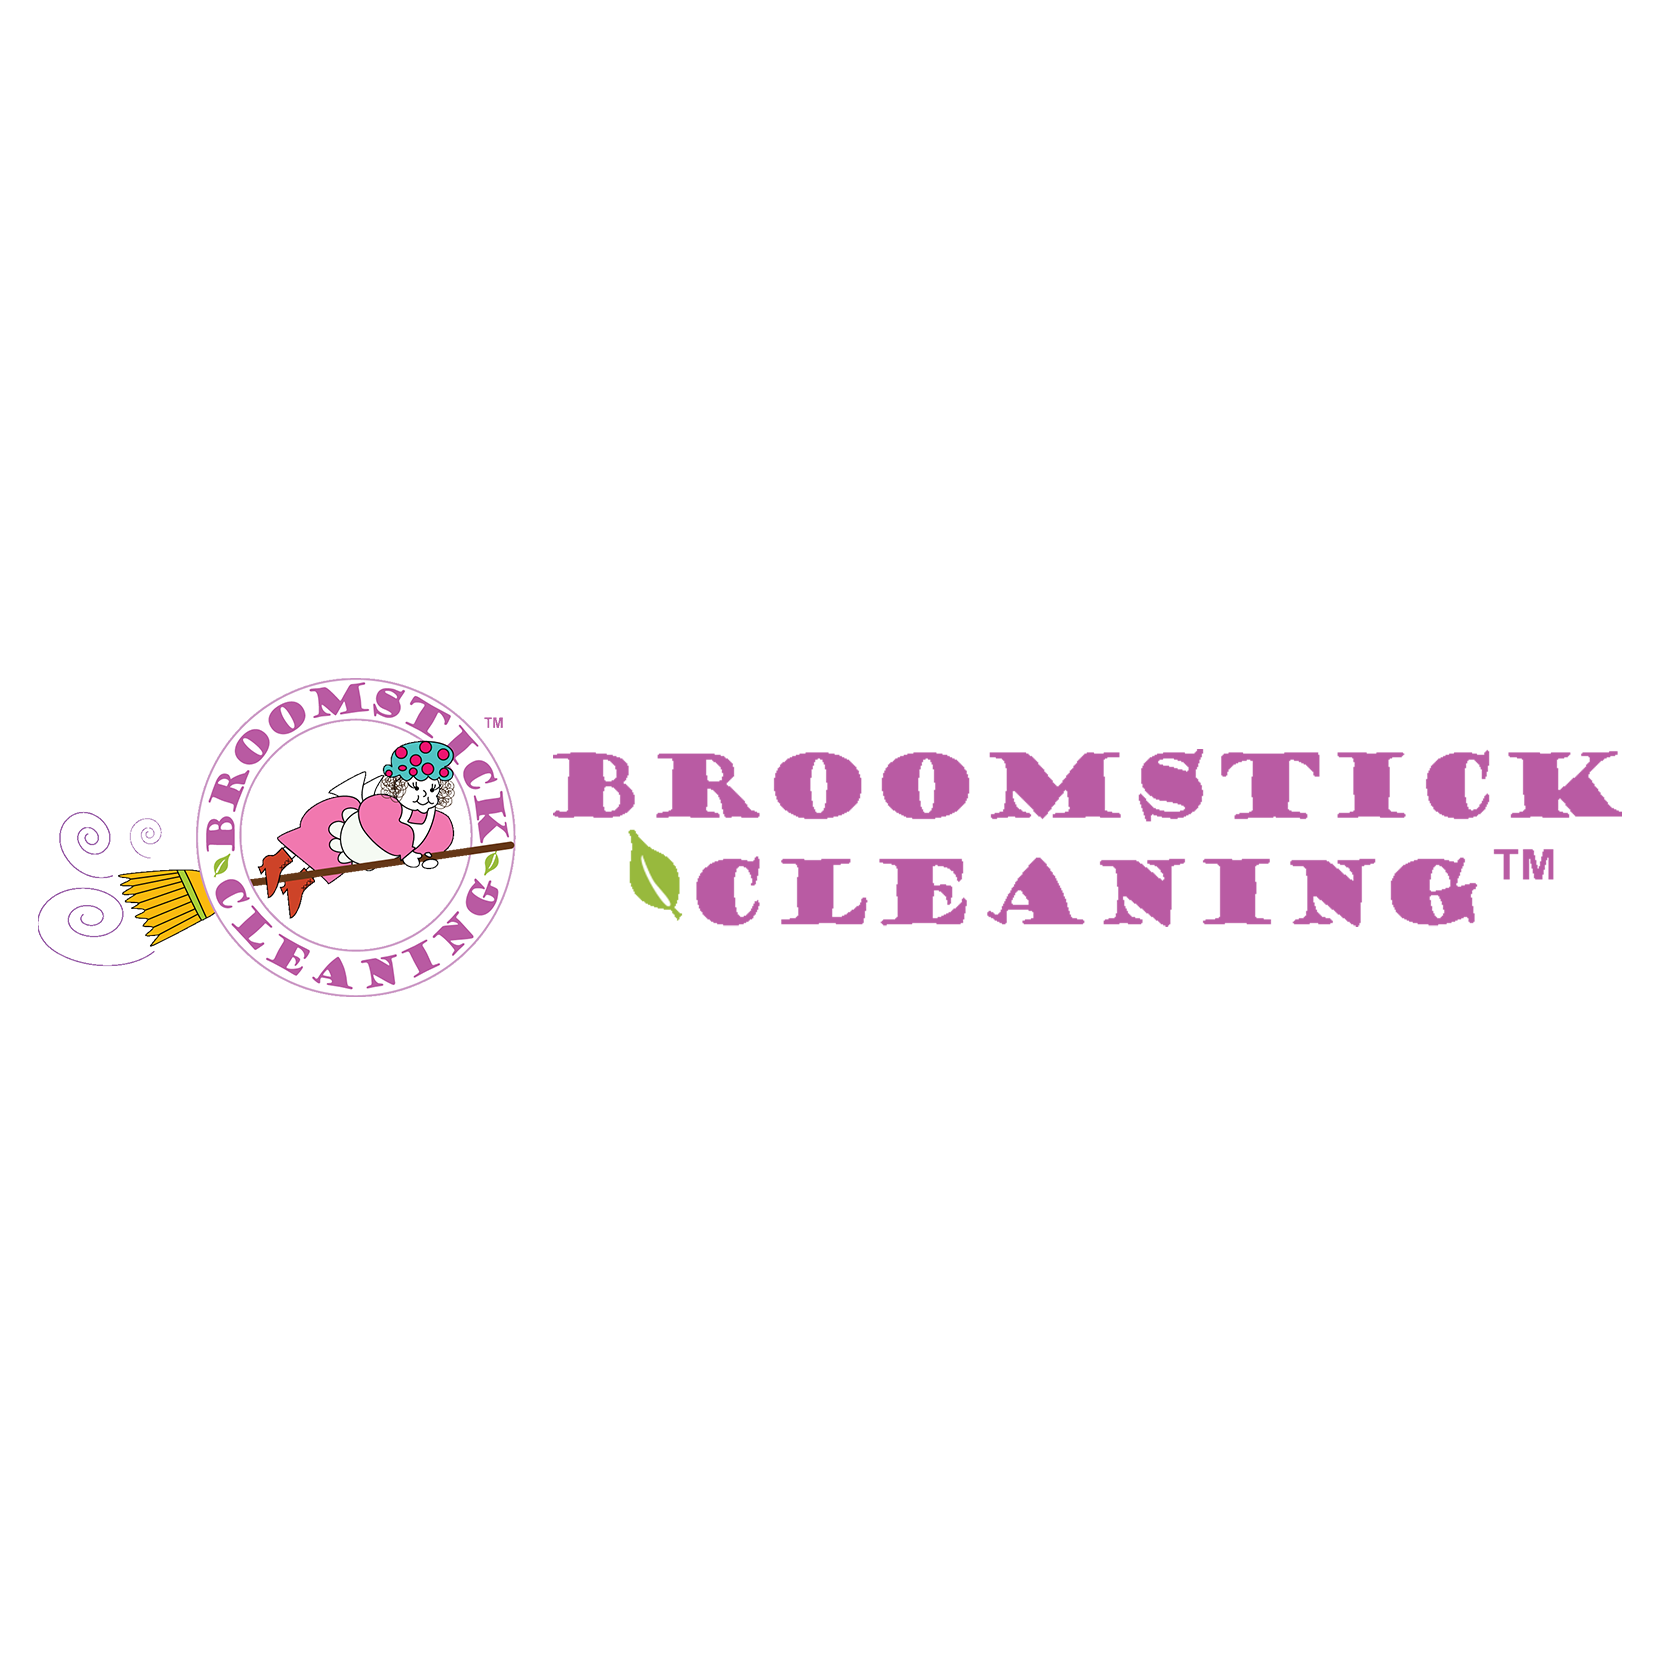 Broomstick Cleaning